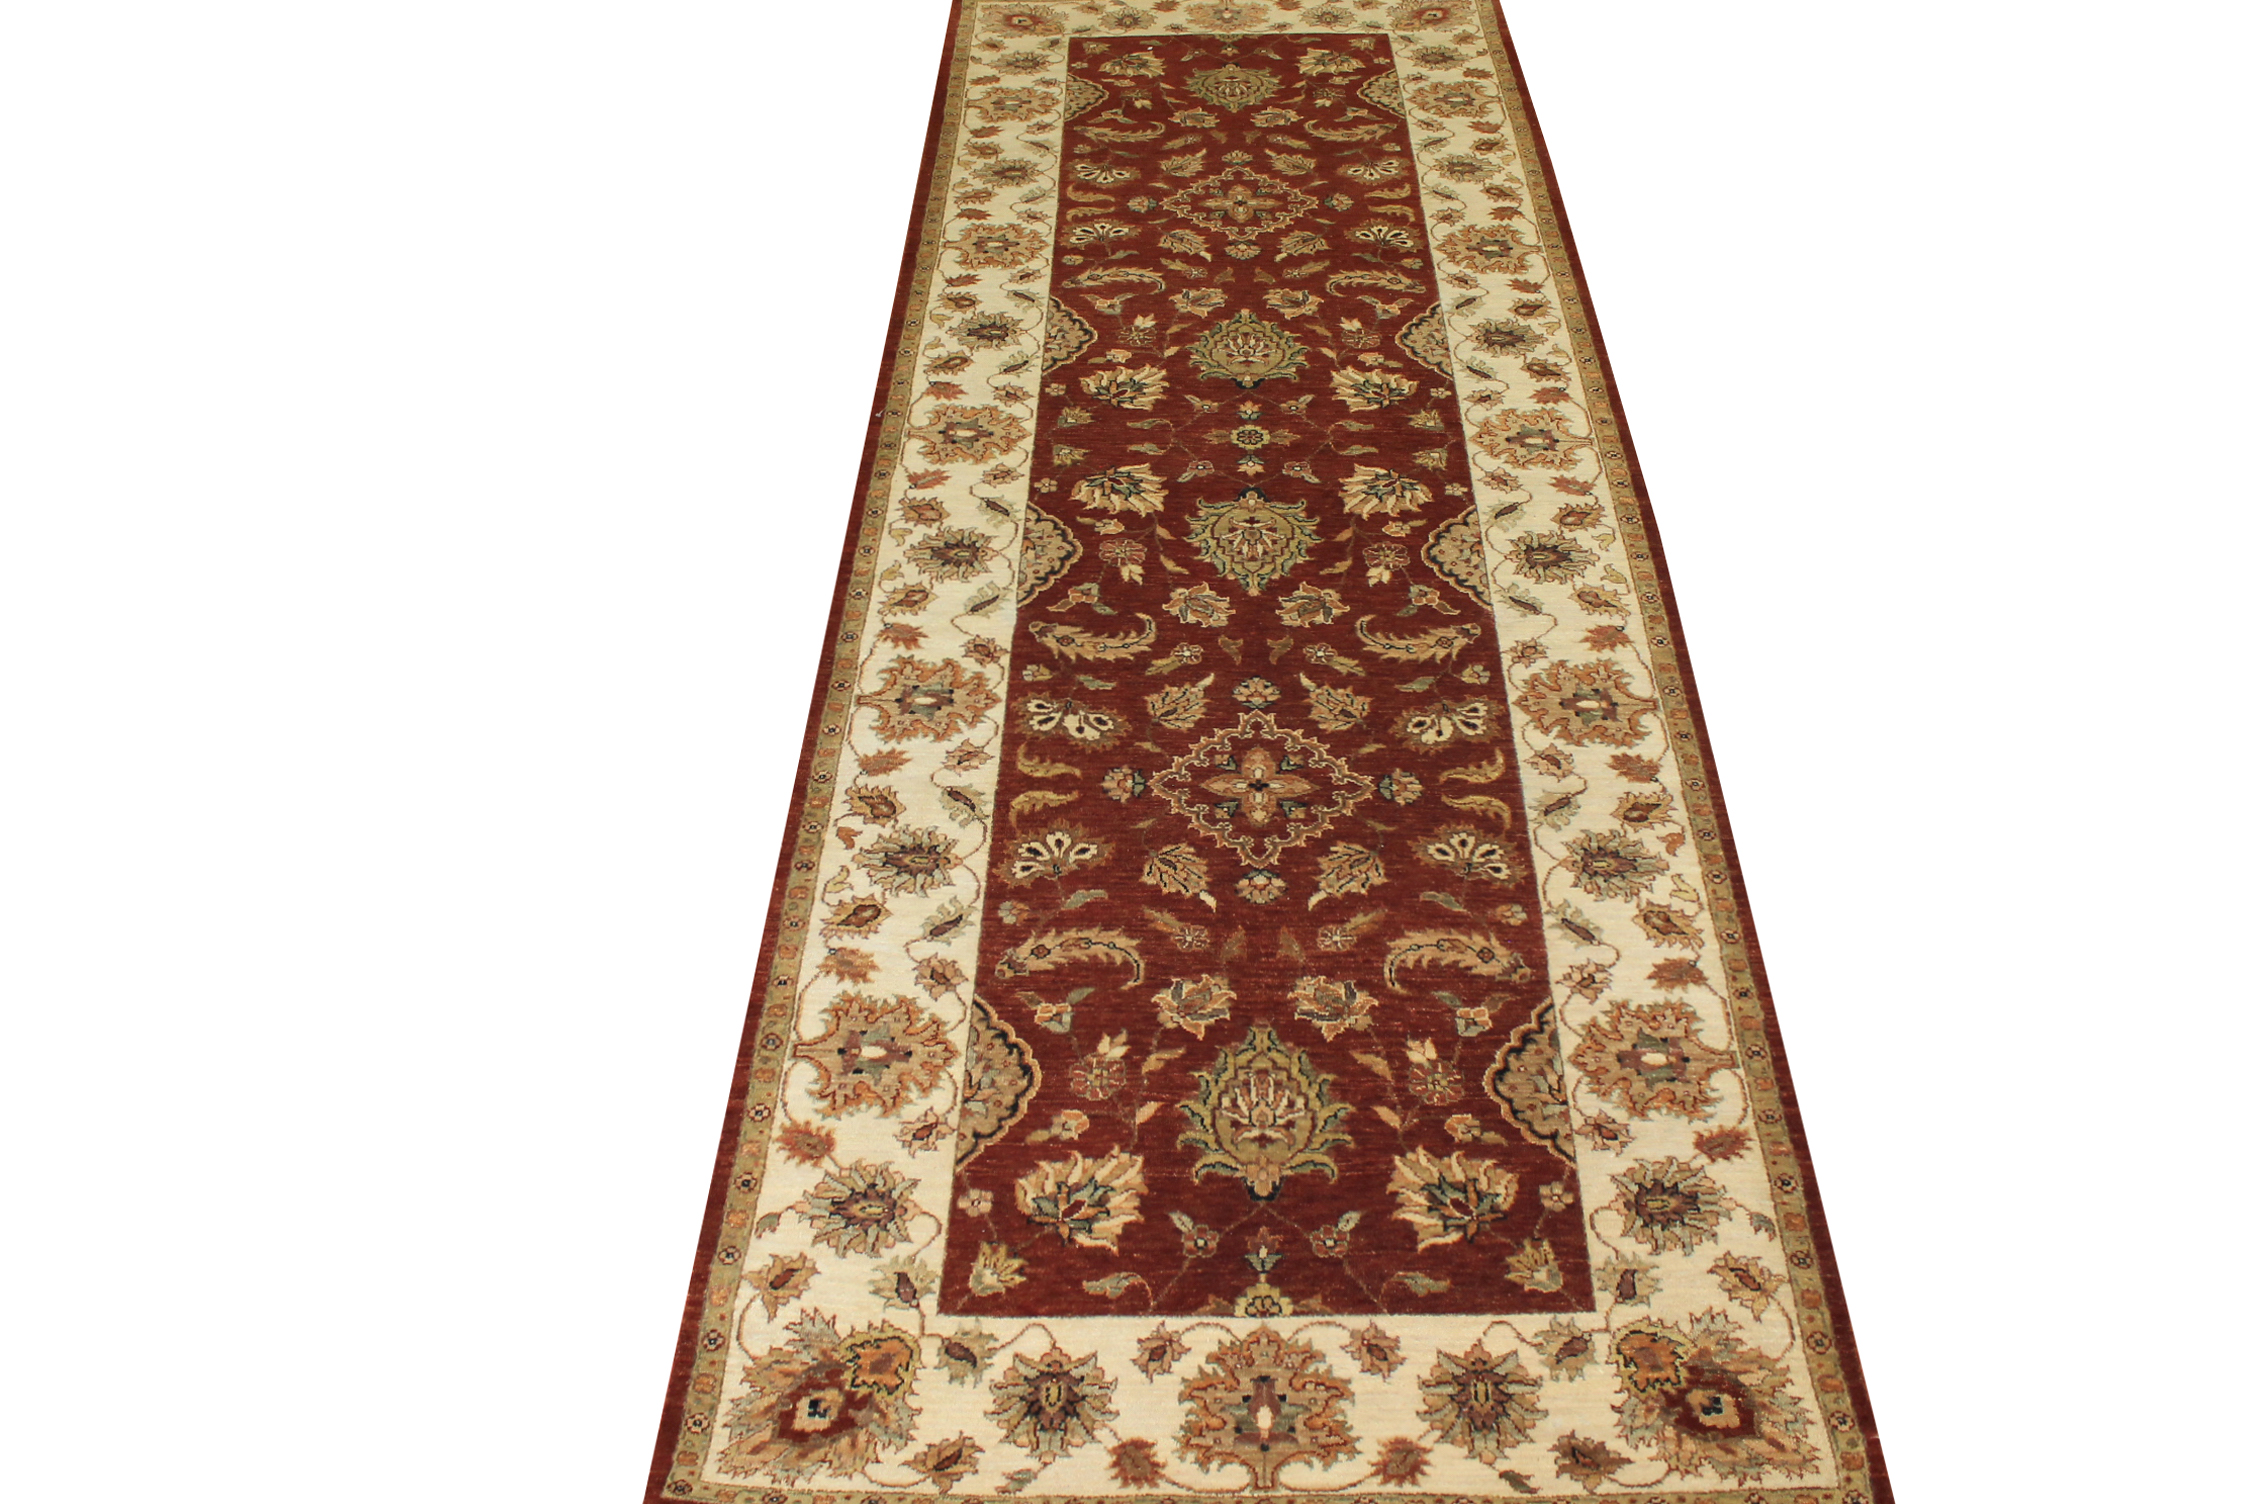 Wide Runner Traditional Hand Knotted Wool Area Rug - MR16578